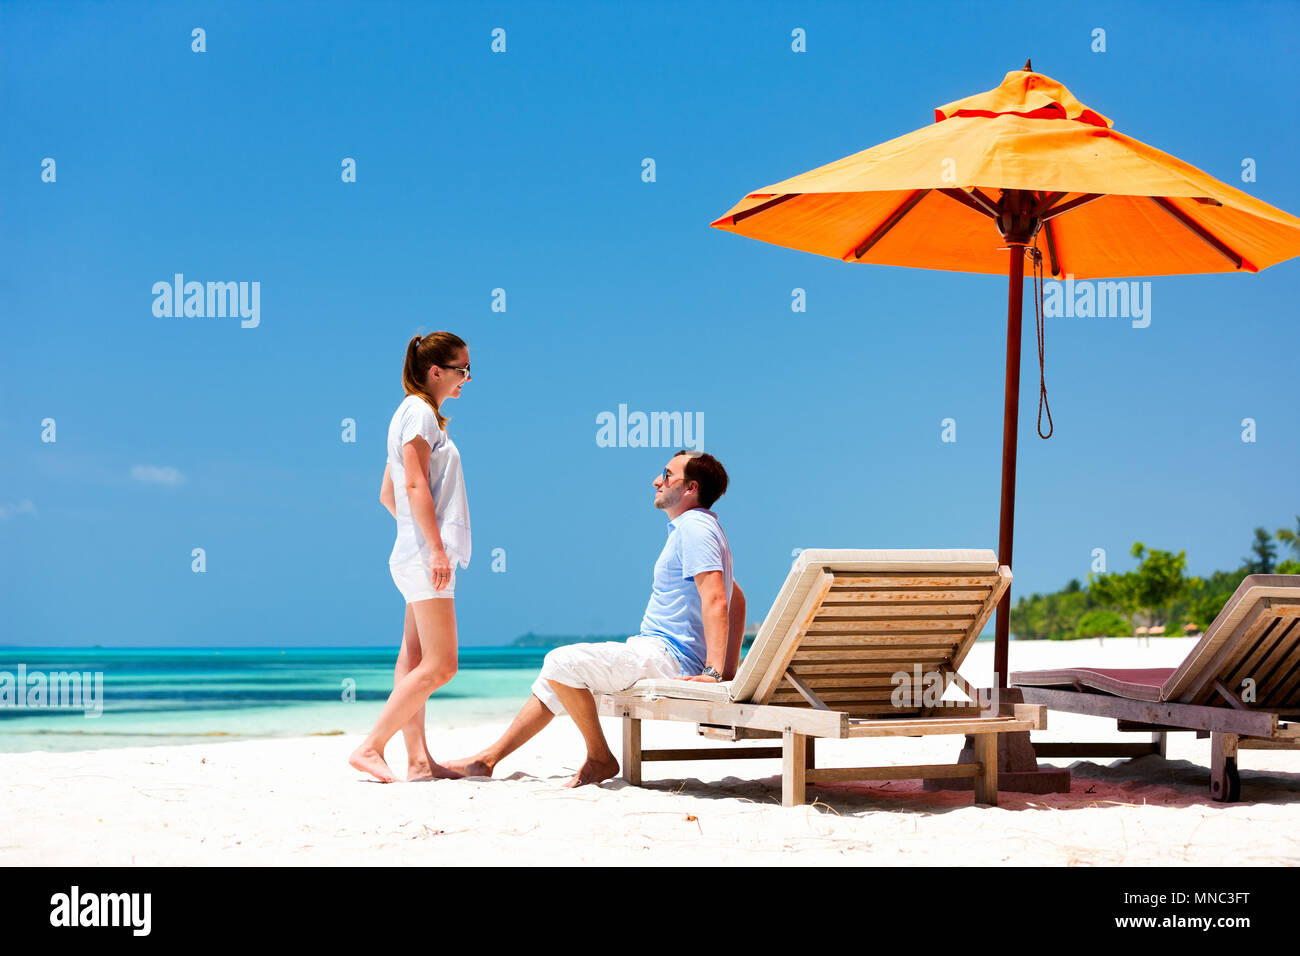 Romantic couple on a tropical beach during honeymoon vacation - Stock Image